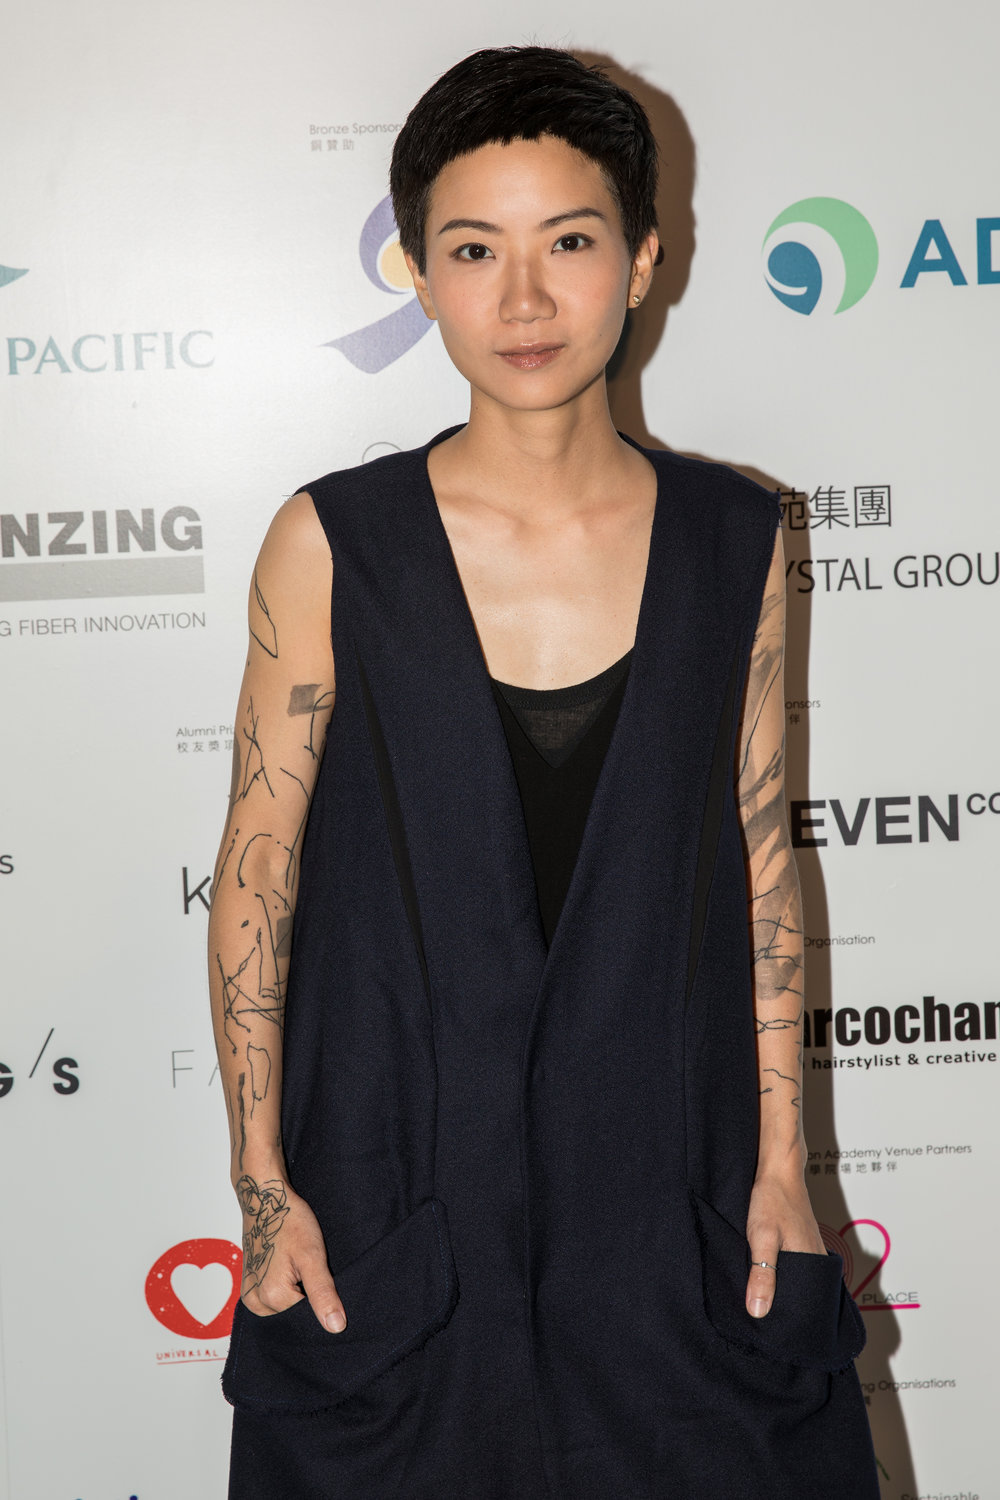 EcoChic Design Award 2017 special prize judge Ellen Loo wears Alex Leau to attend the EcoChic Design Award 2017 Grand Final Show